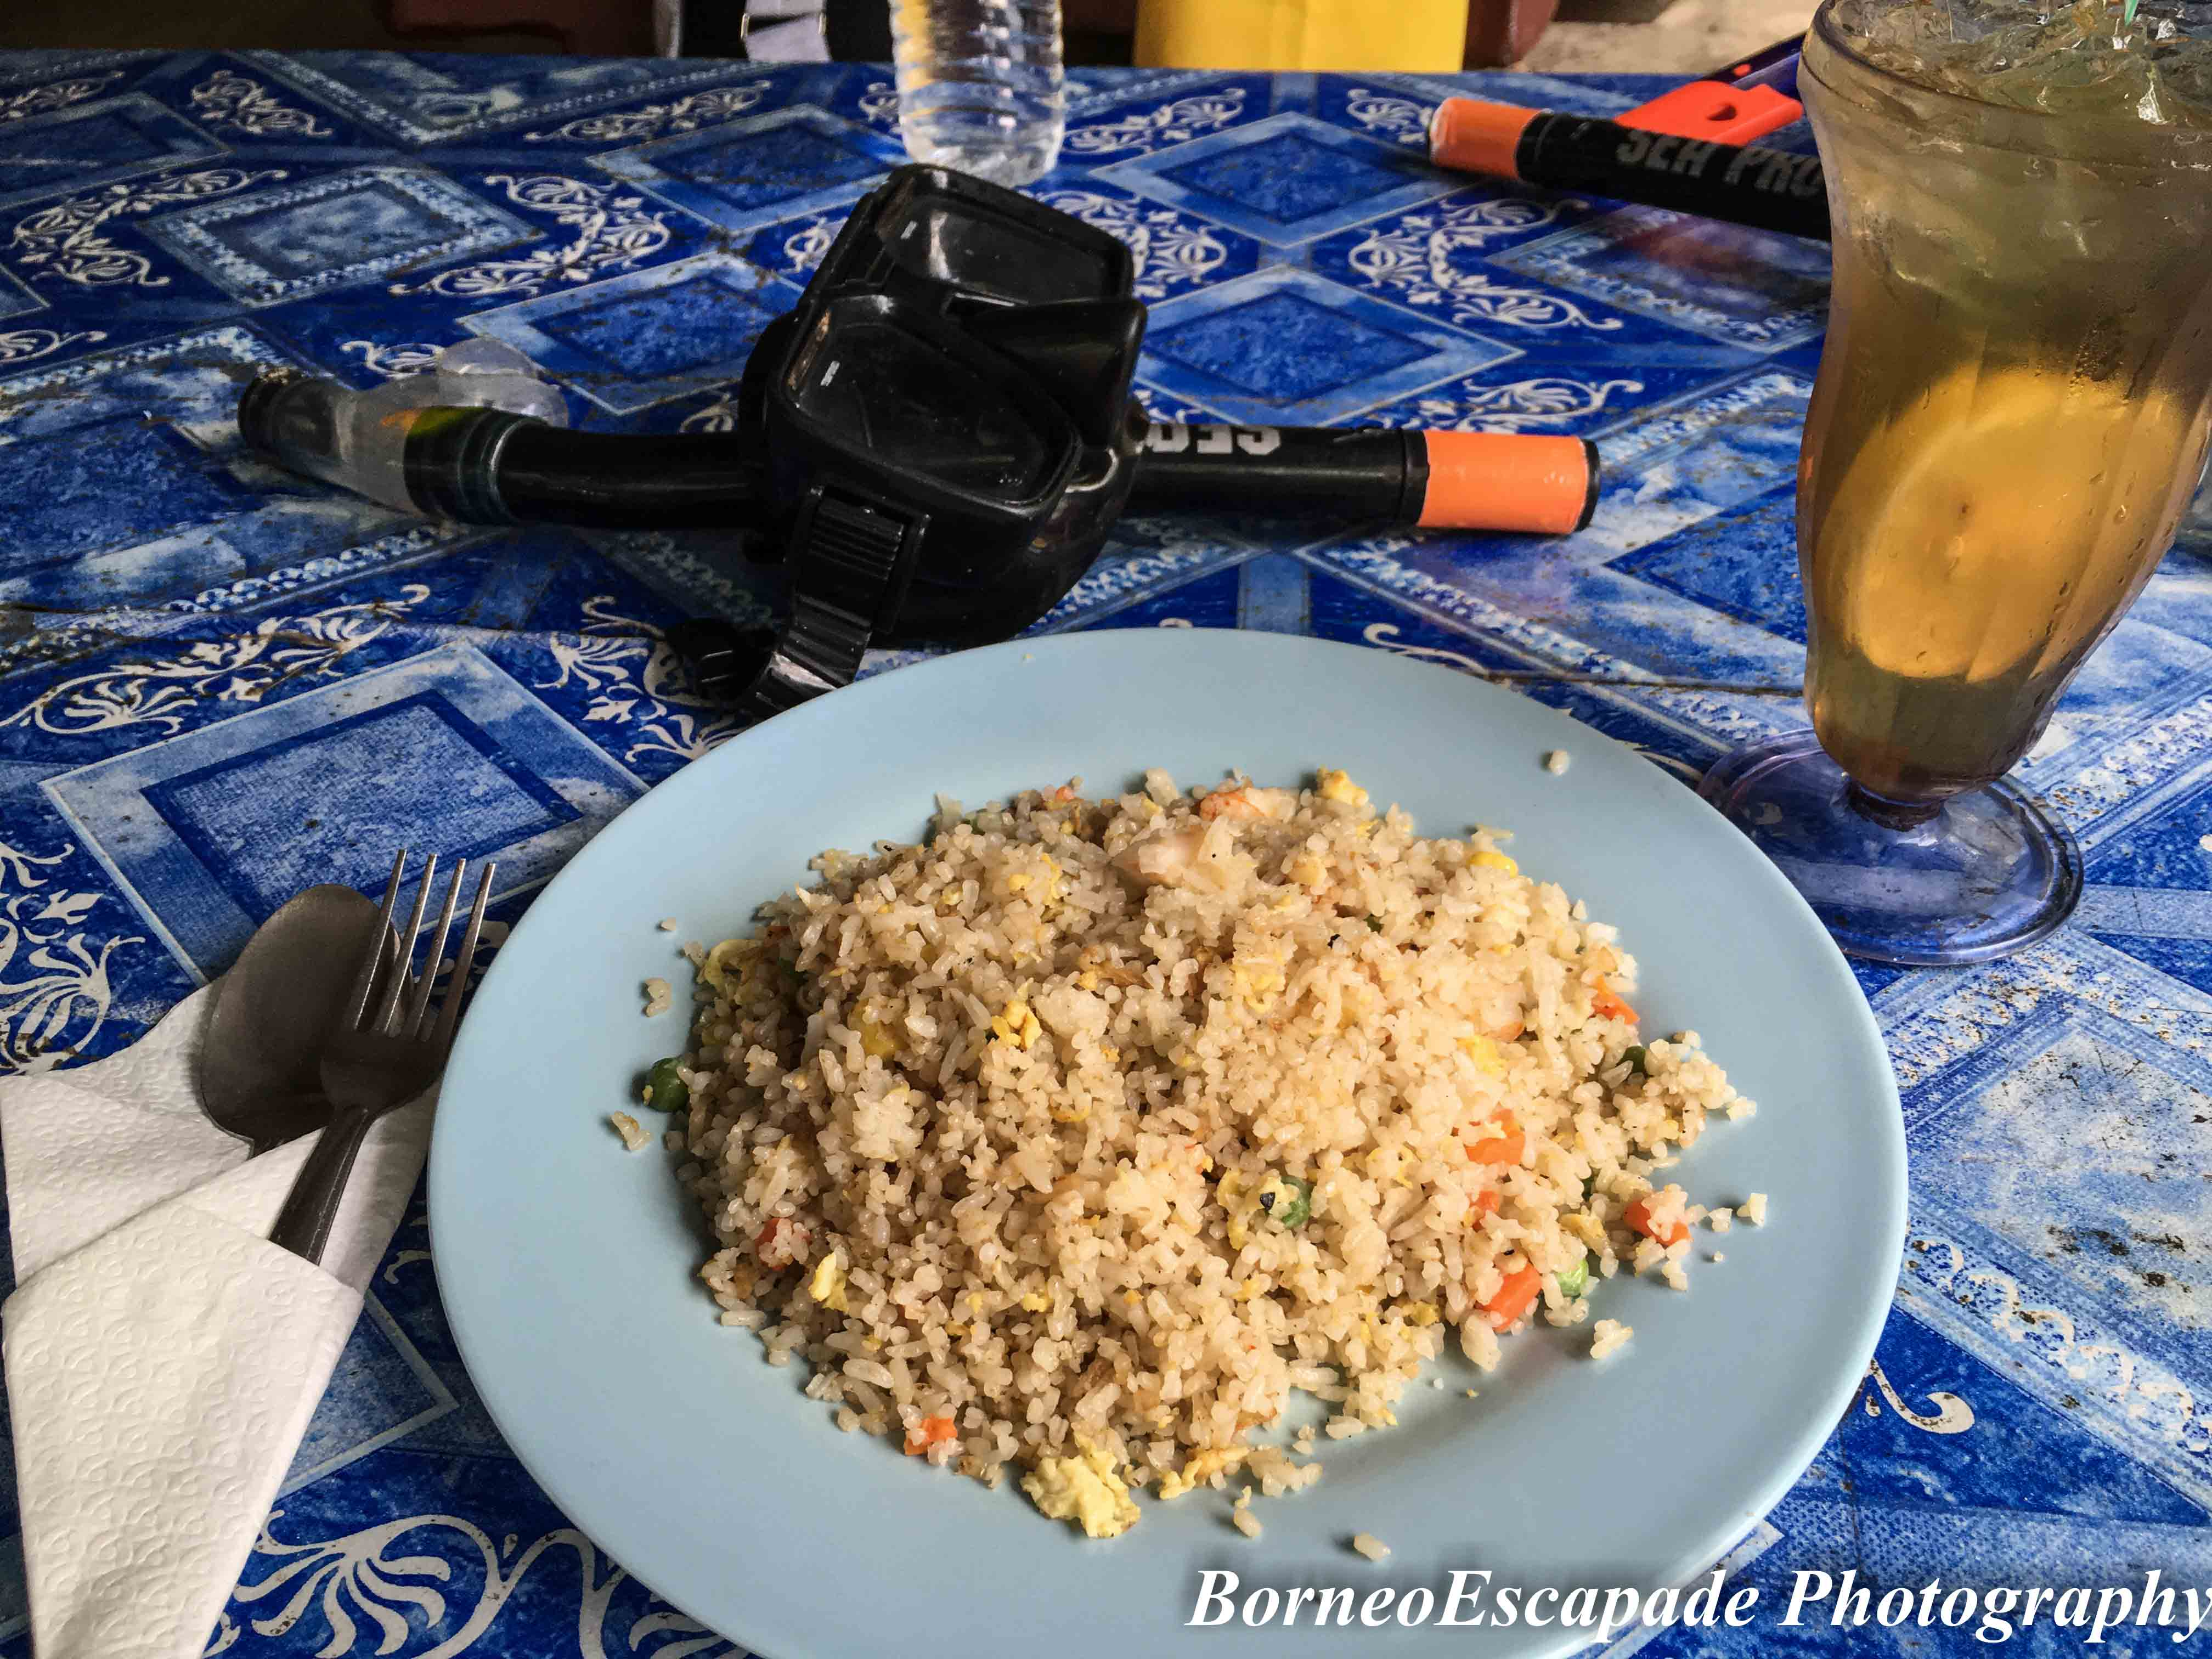 My plate of fried rice costed RM12.00 per plate and a glass of honey lemon ice costed RM5.00